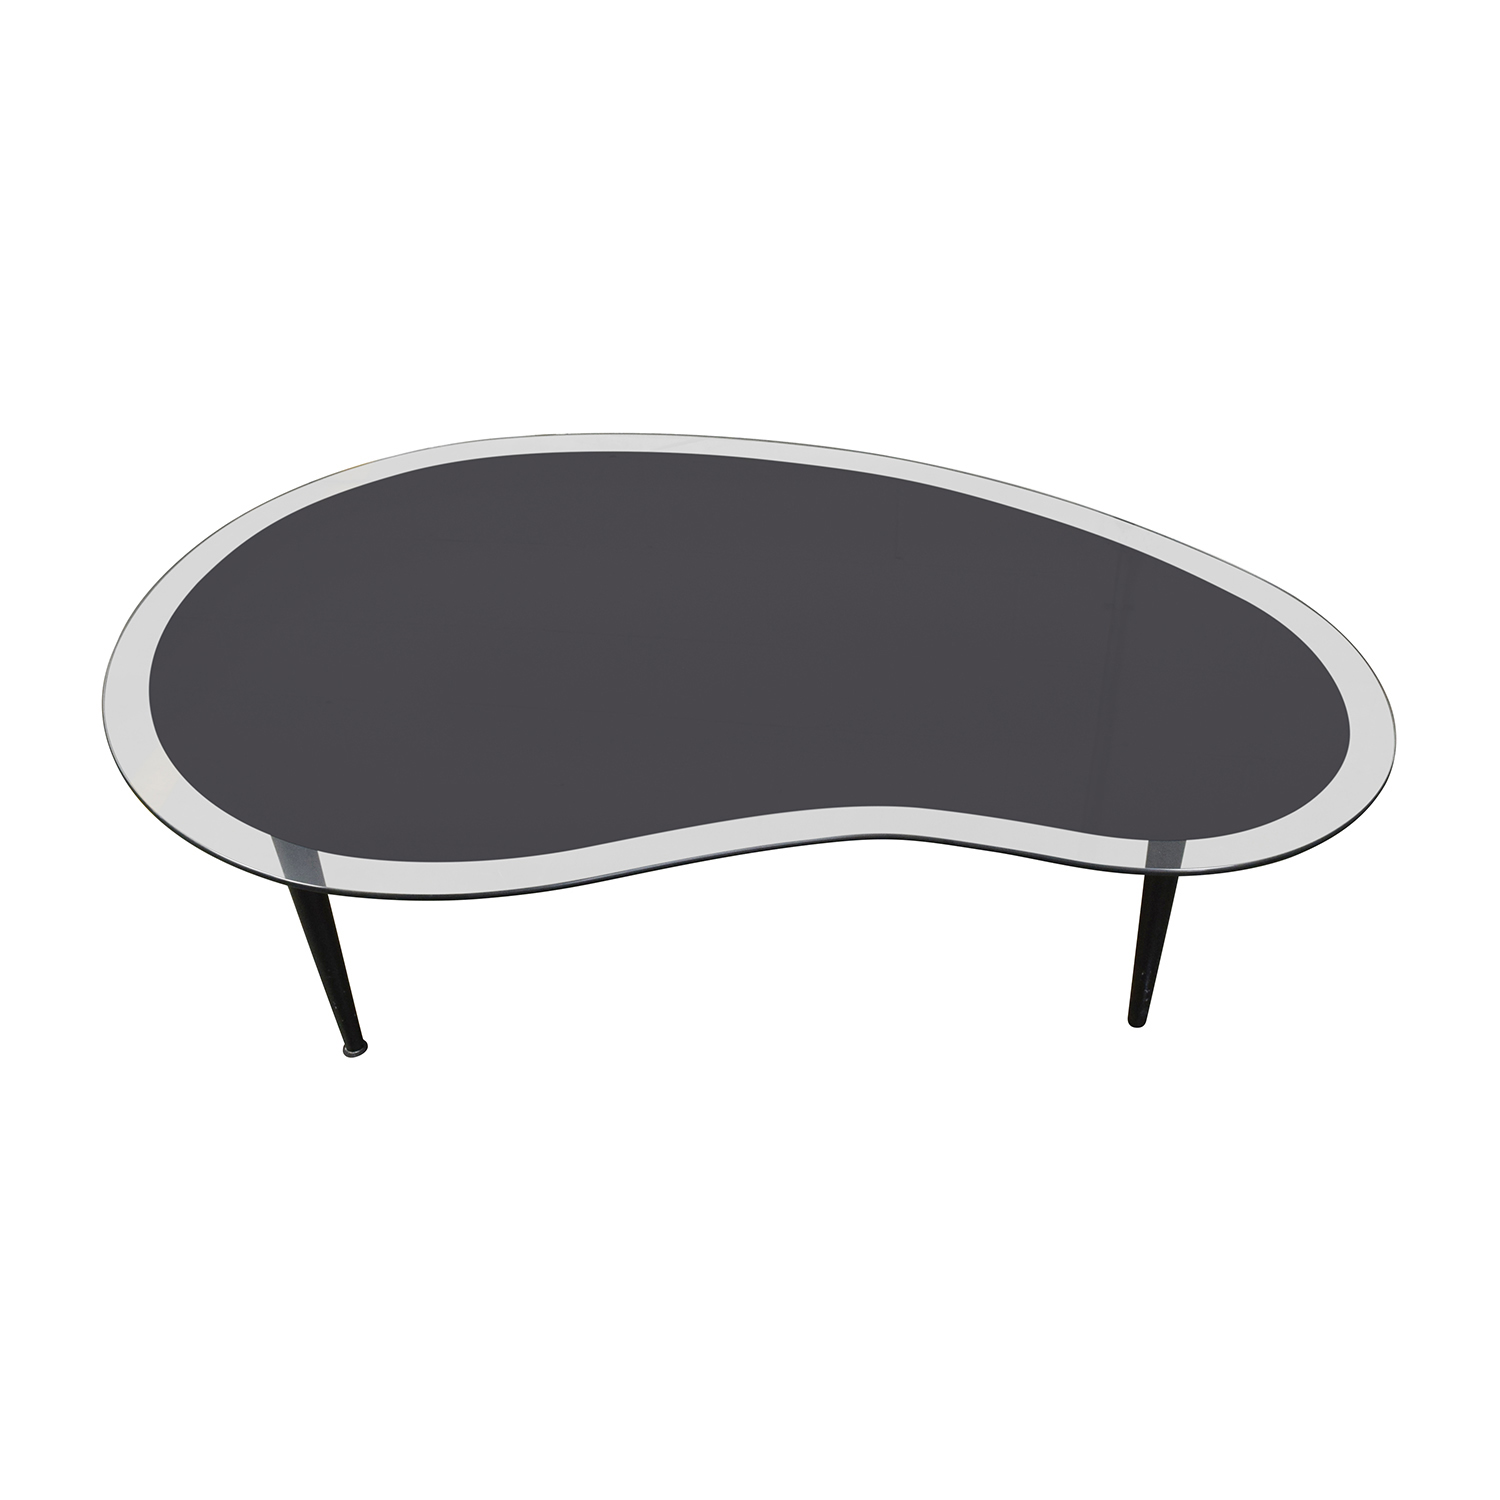 45% OFF Metal Ring Coffee Table Tables